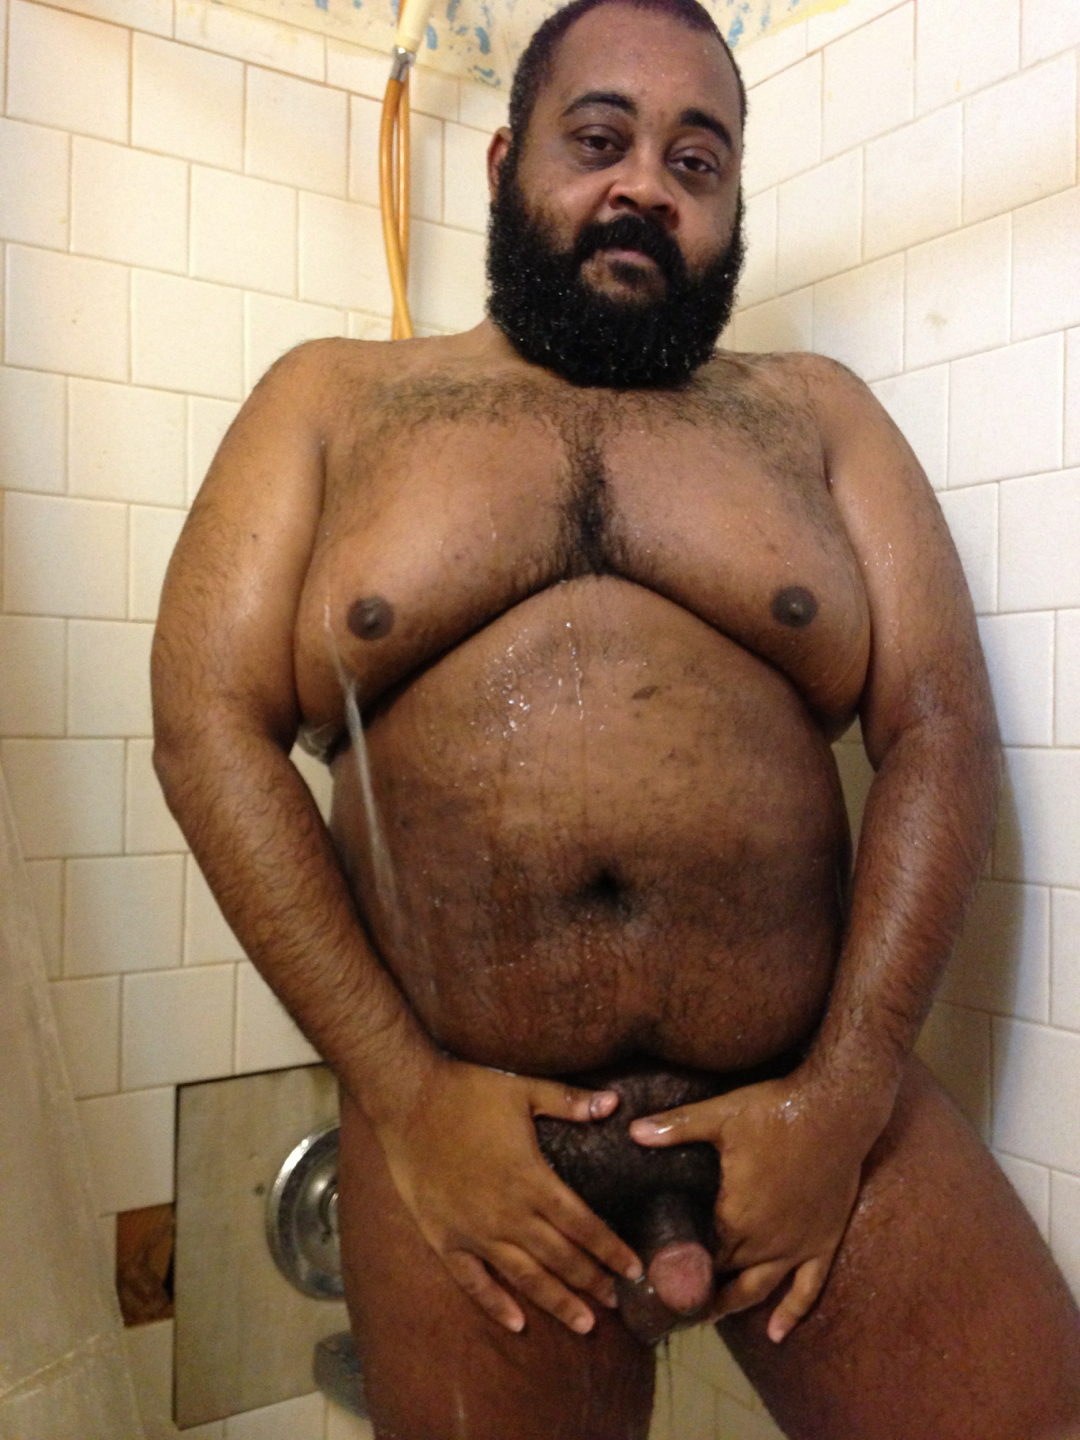 Hairy black nude men consider